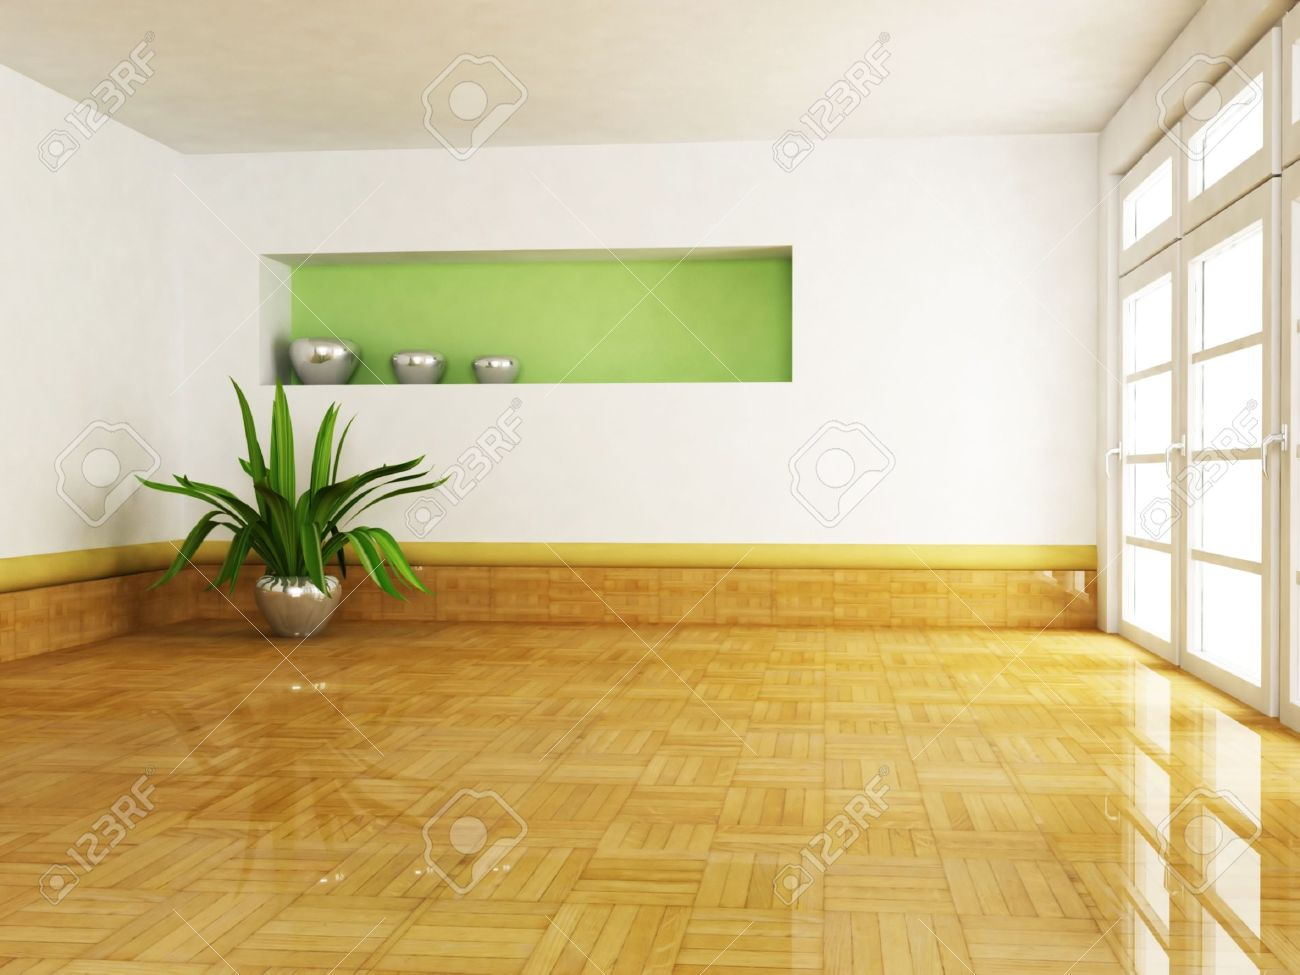 Interior Design Scene With A Plant In The Empty Room Stock Photo